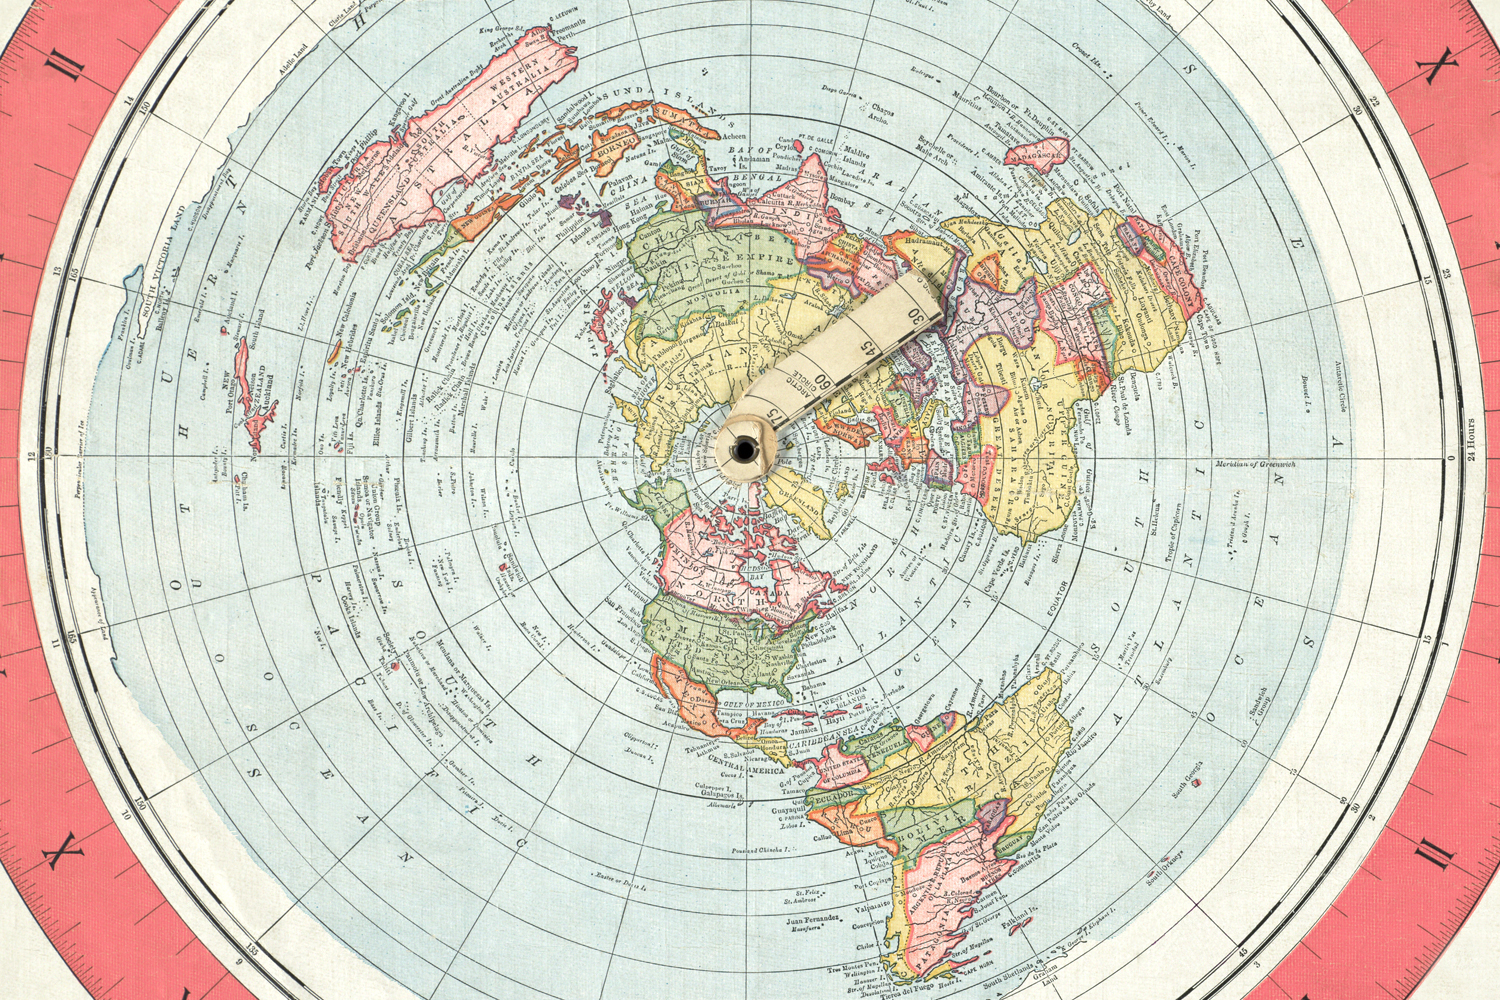 south pole google maps with La Tierra Plana Maniobra Distraccion Encubrimientos Nasa on Australia World Map together with Spherical Image Of The Earth Centered In North America furthermore Map Of Continents If All Ice Melted Sea additionally The Monroe Doctrine And Blacks furthermore Oops.